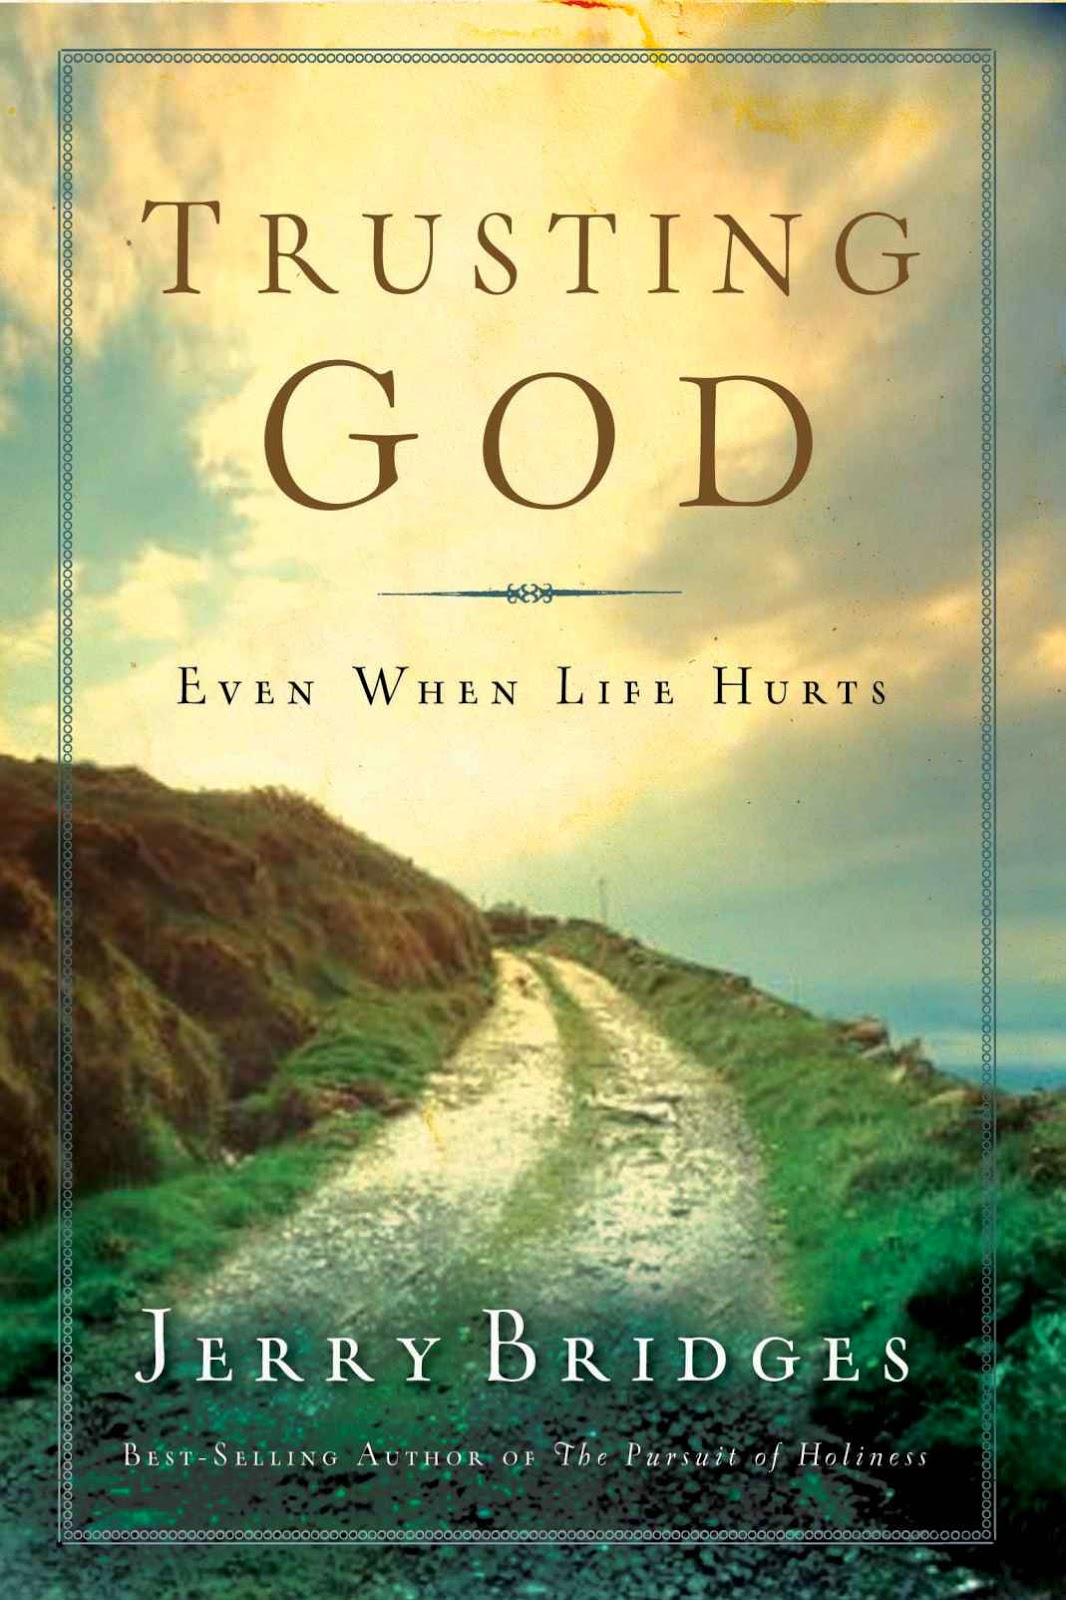 suffering and trusting god from the book of job essay God does not create suffering for the righteous man, but uses that suffering for the good and betterment of humanity finished reading why the righteous suffer according to the book of job.